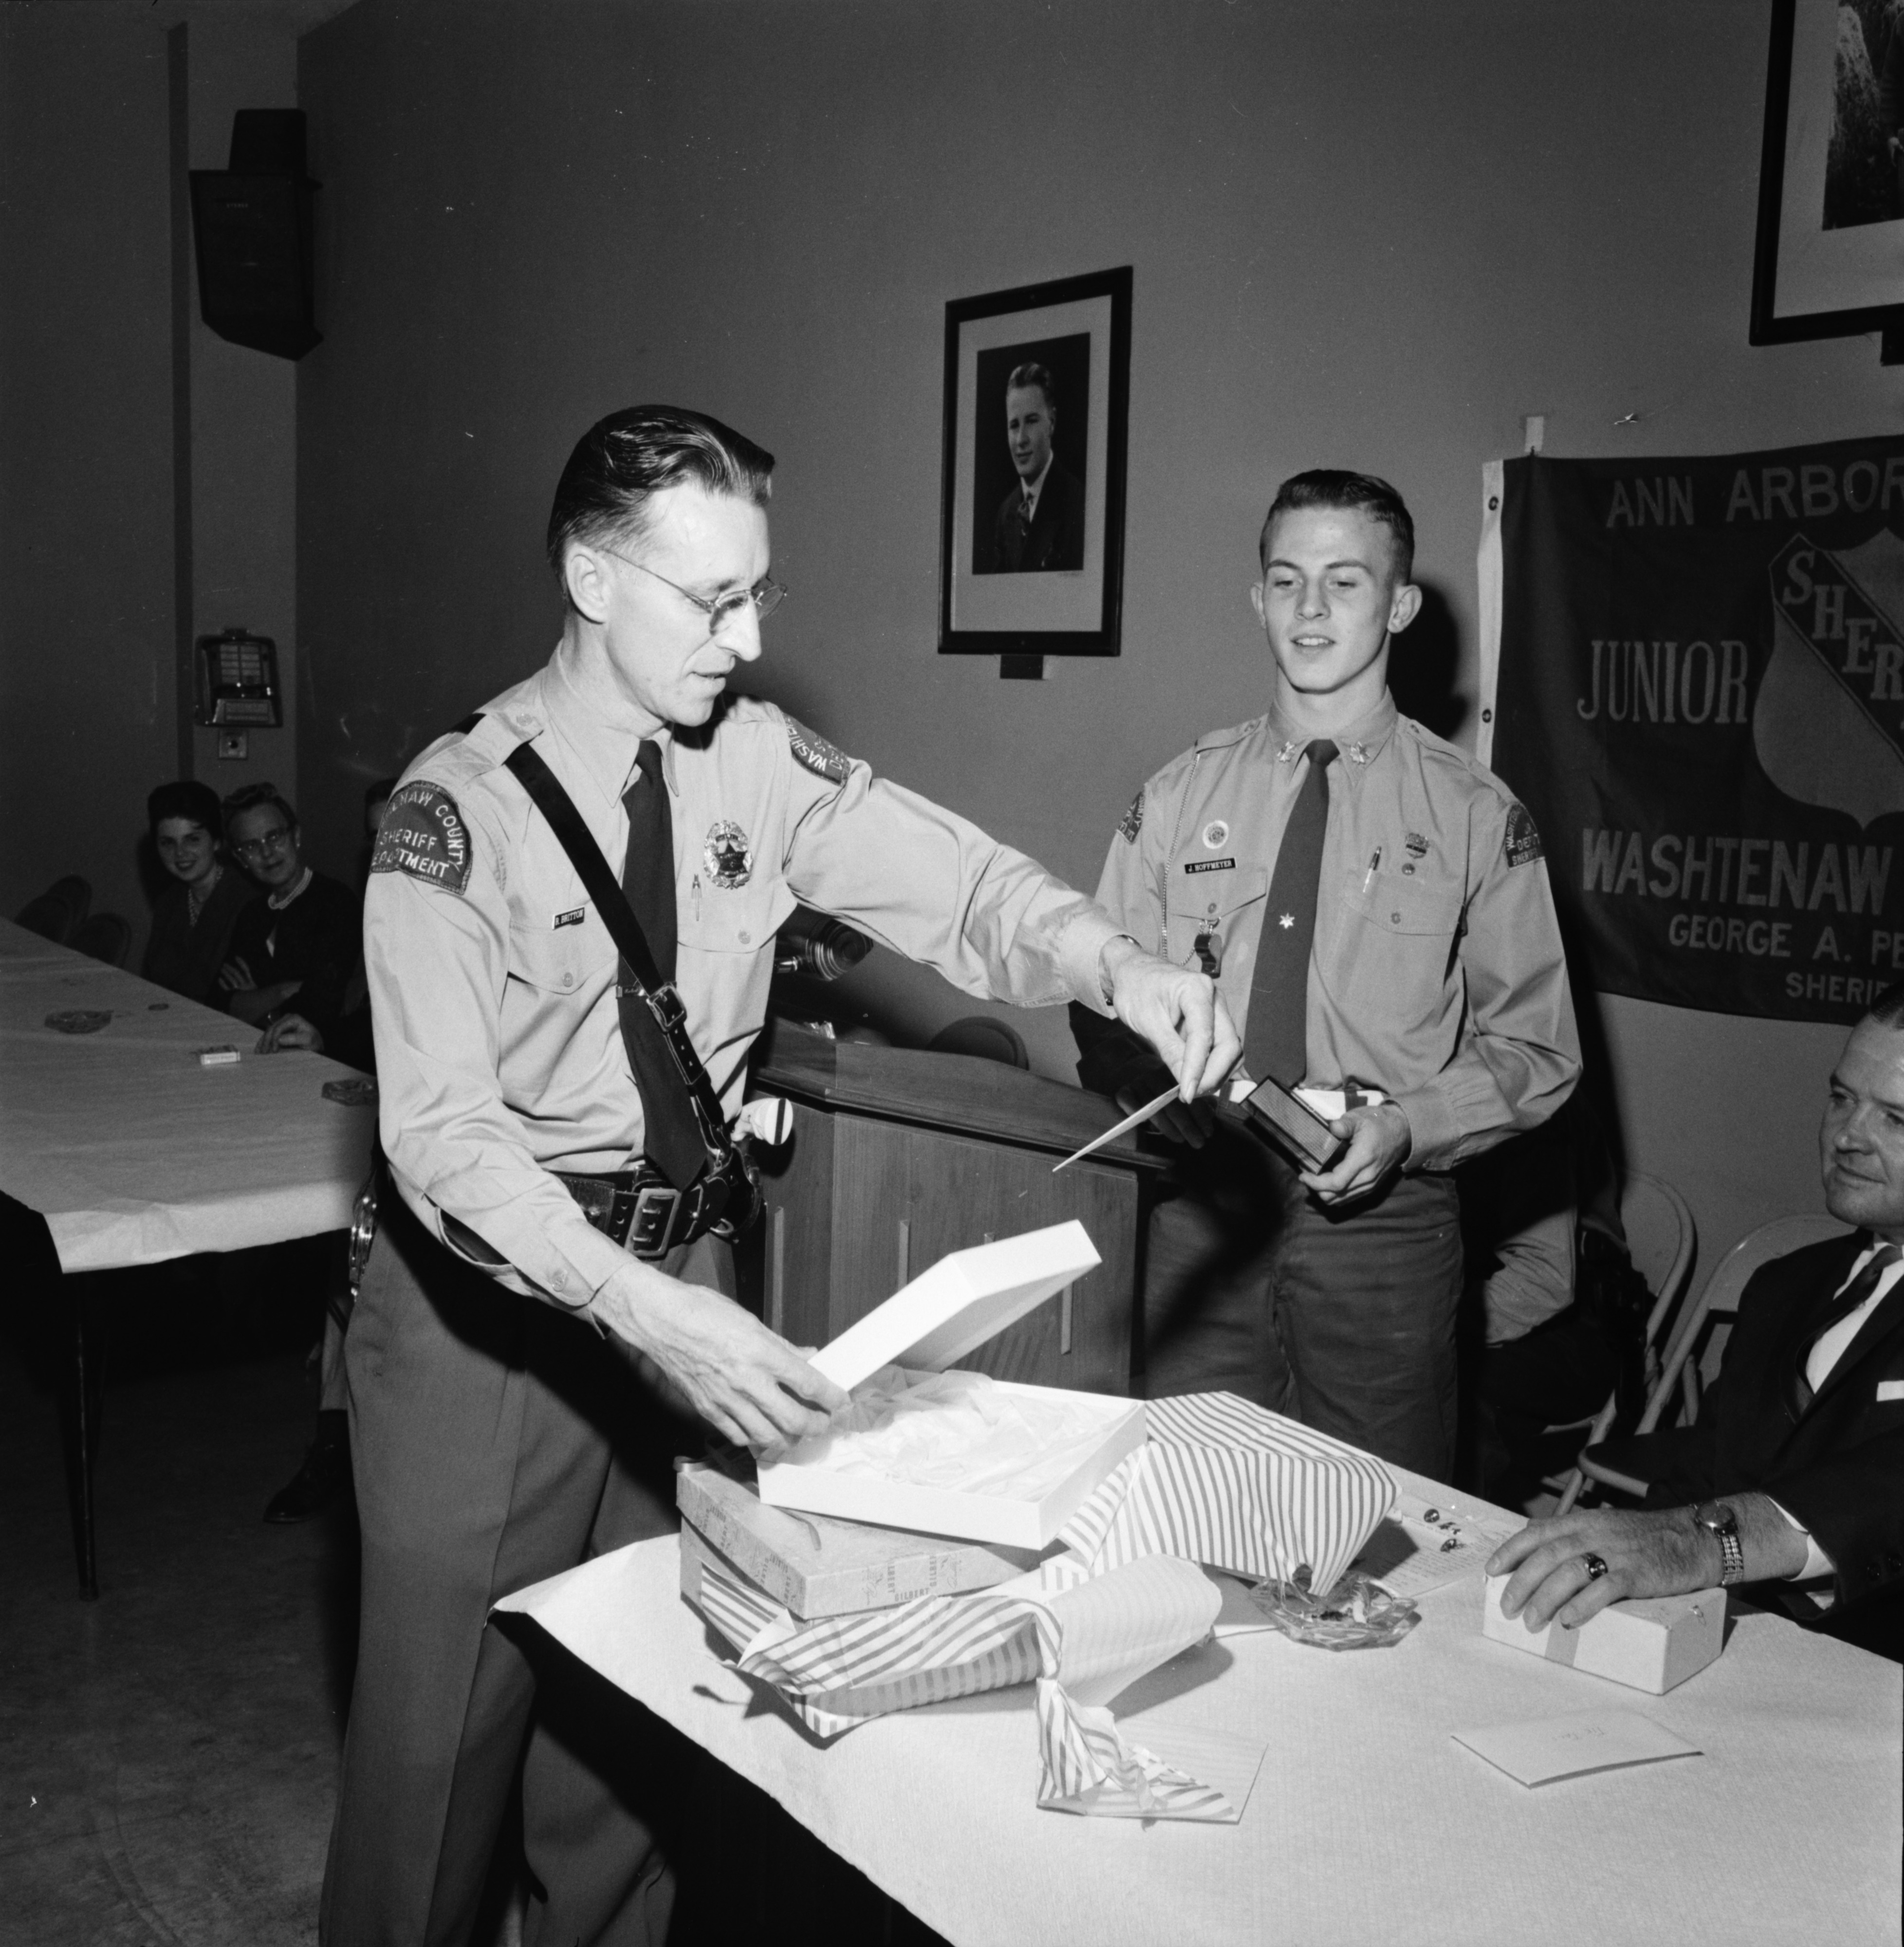 Director Robert C. Britton Receives Gift From Junior Deputies, November 1961 image